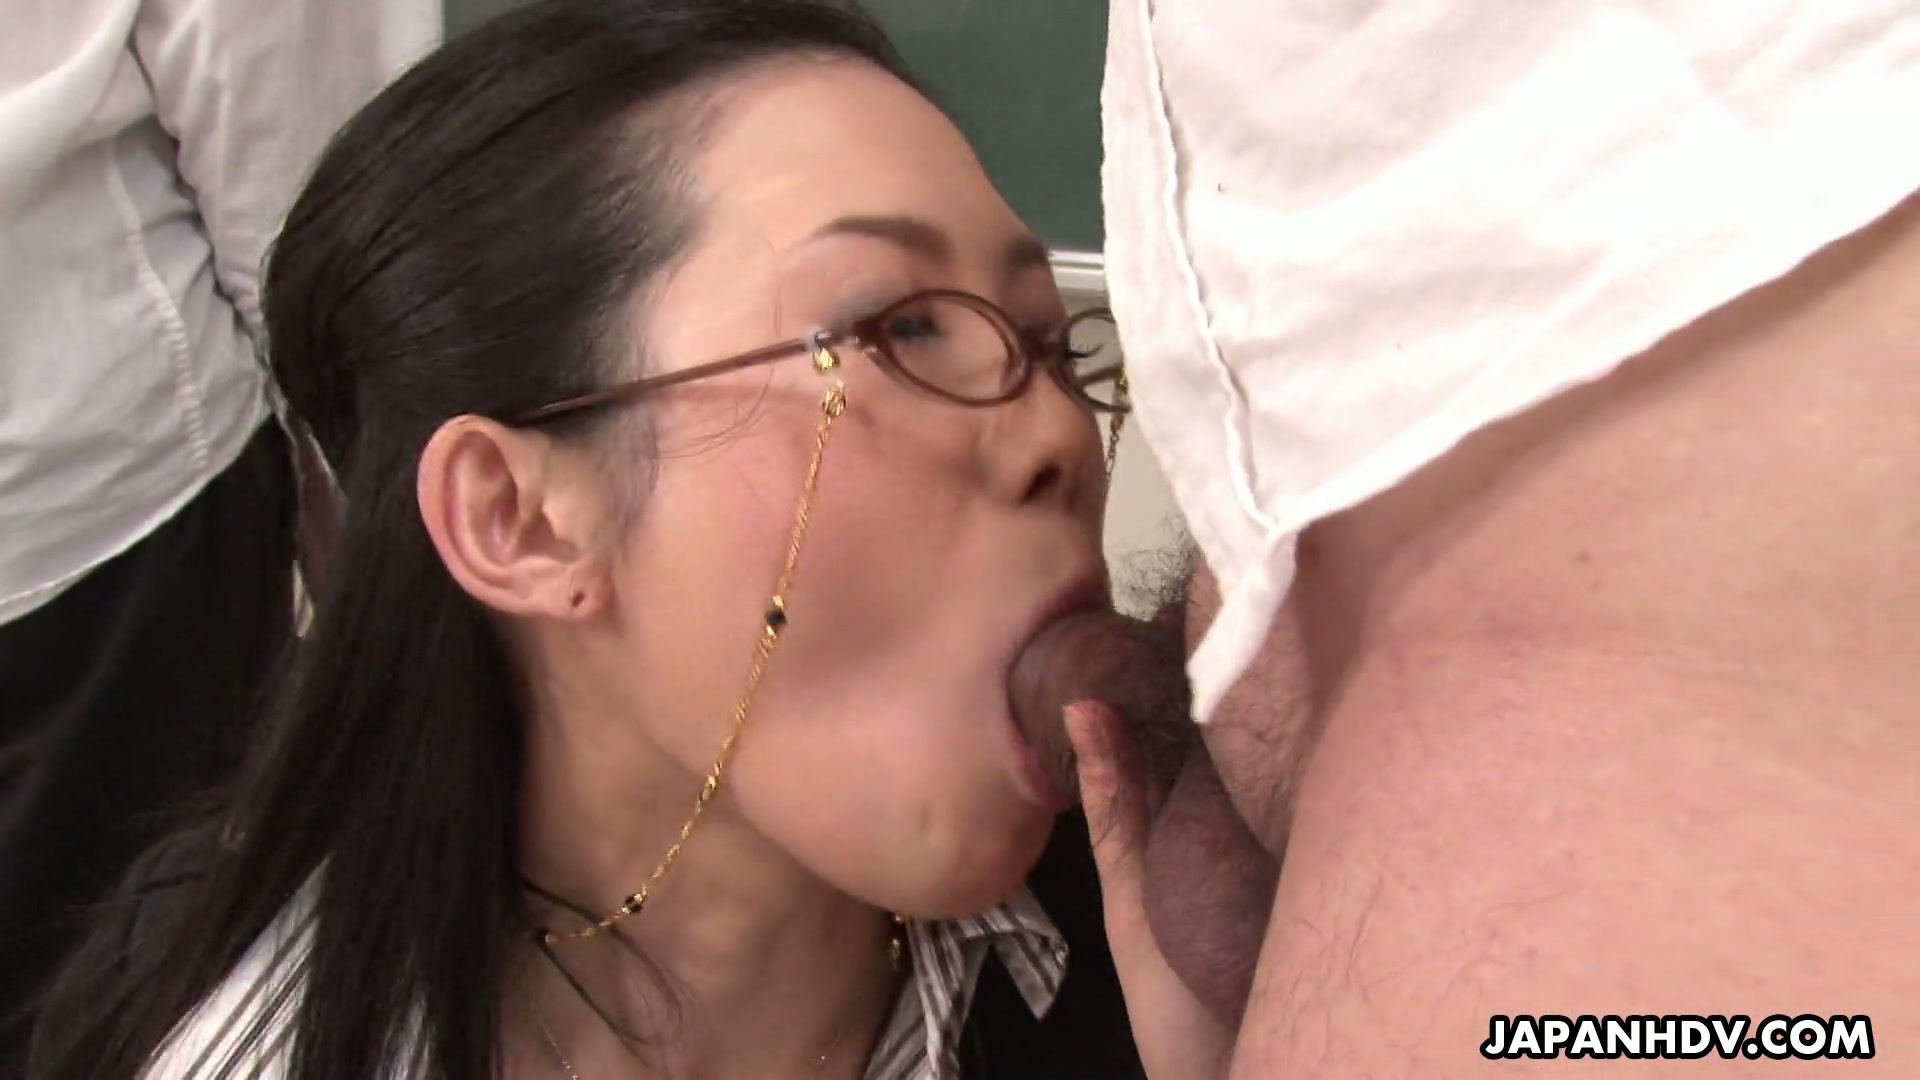 Filthy Asian teacher in glasses performs stout blowjob to her student